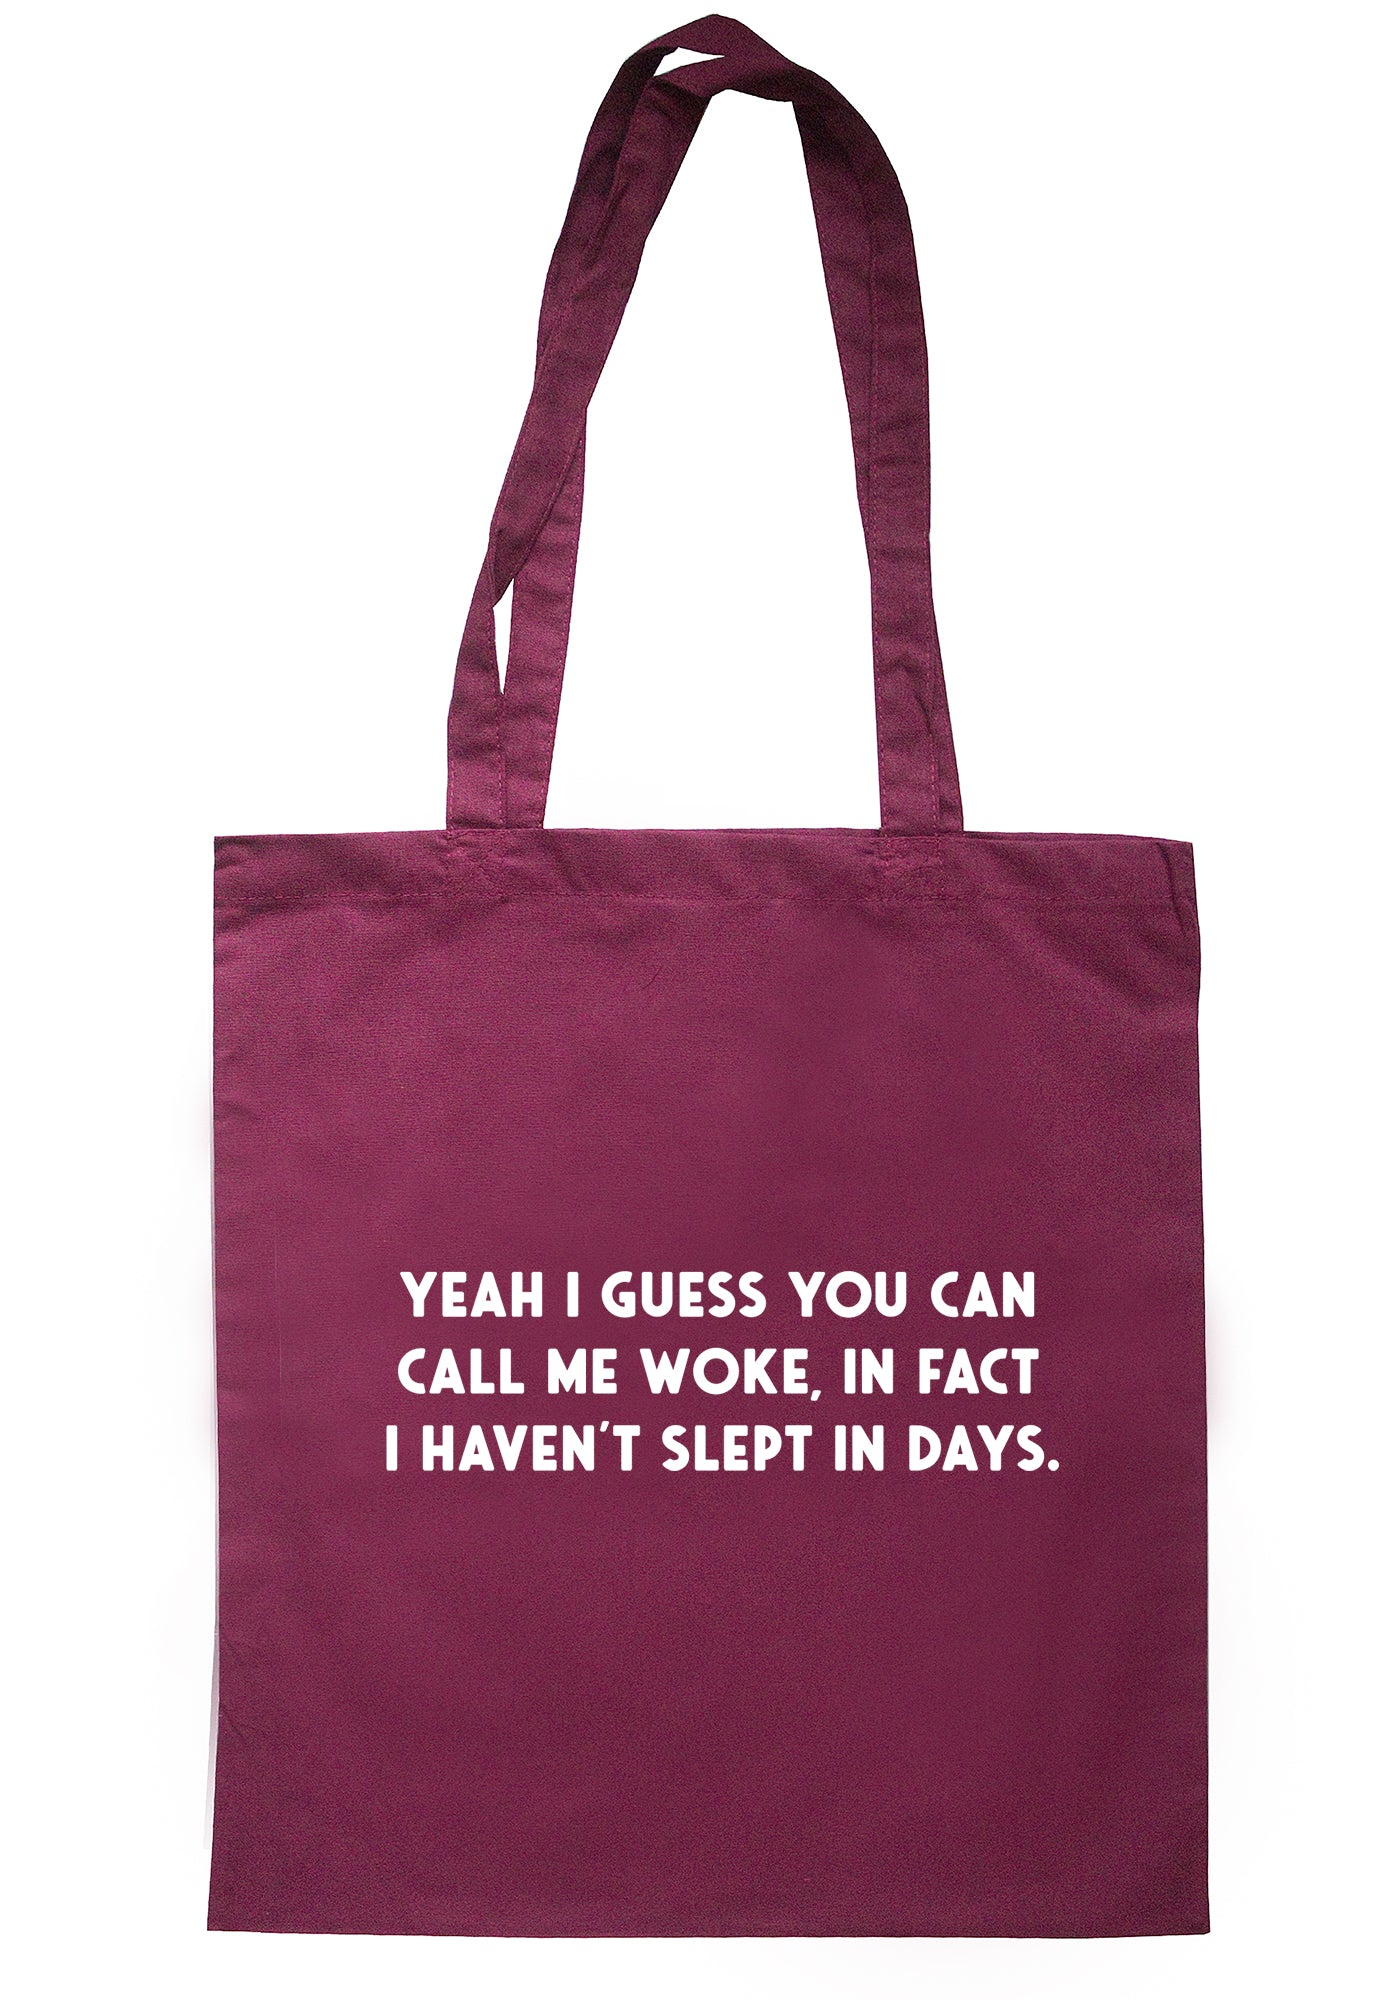 Yeah I Guess You Can Call Me Woke, In Fact I Haven't Slept In Days Tote Bag S1122 - Illustrated Identity Ltd.